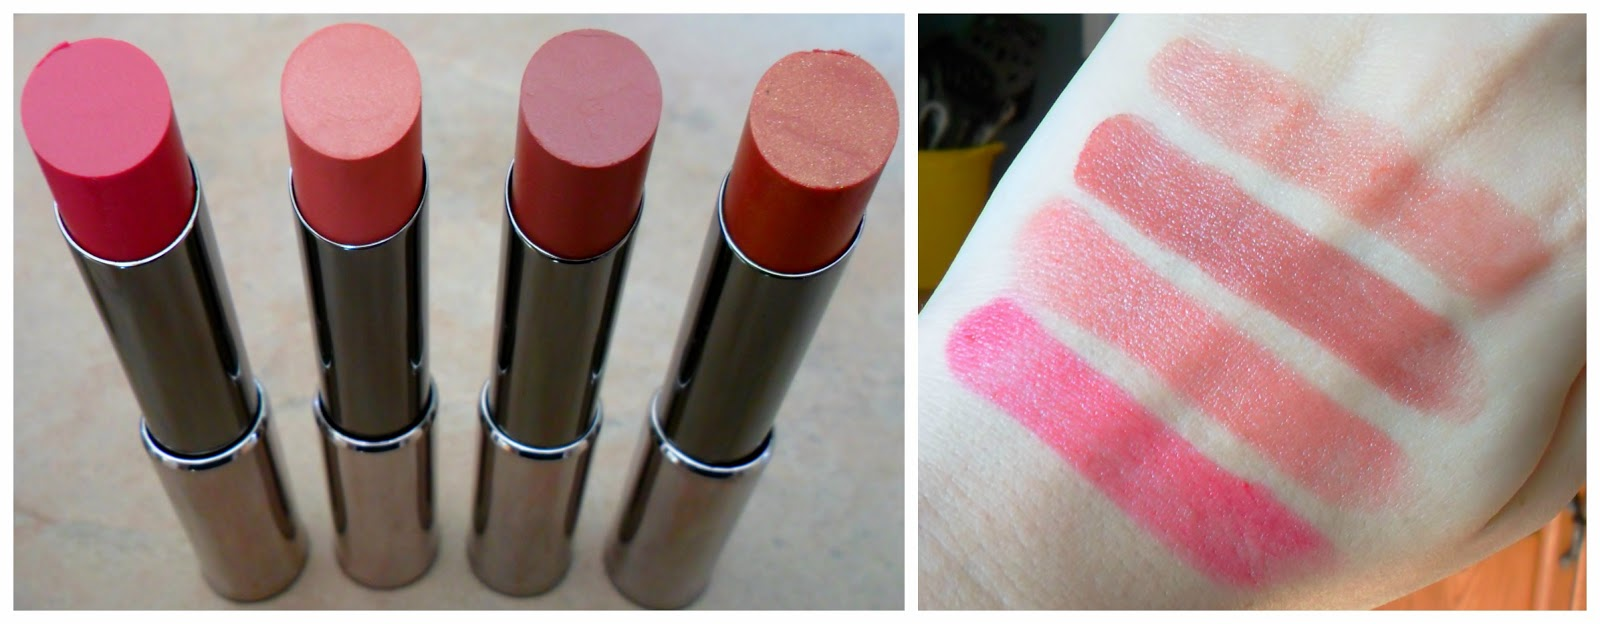 Mary Kay True Dimensions Lipsticks review swatches